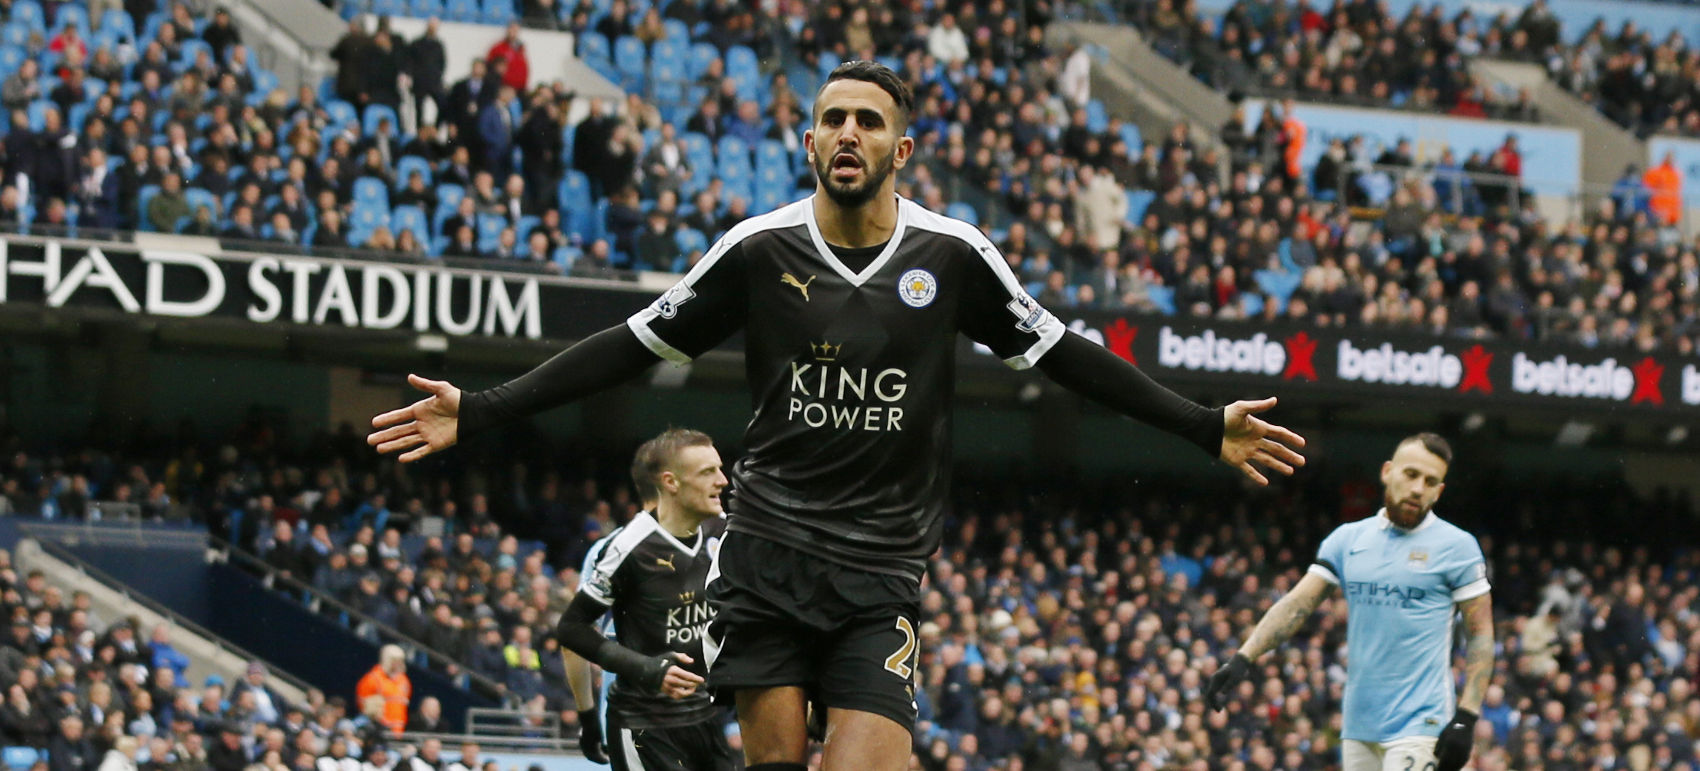 → What was Riyad Mahrez's bargain FPL starting price in Leicester City's title-winning season?